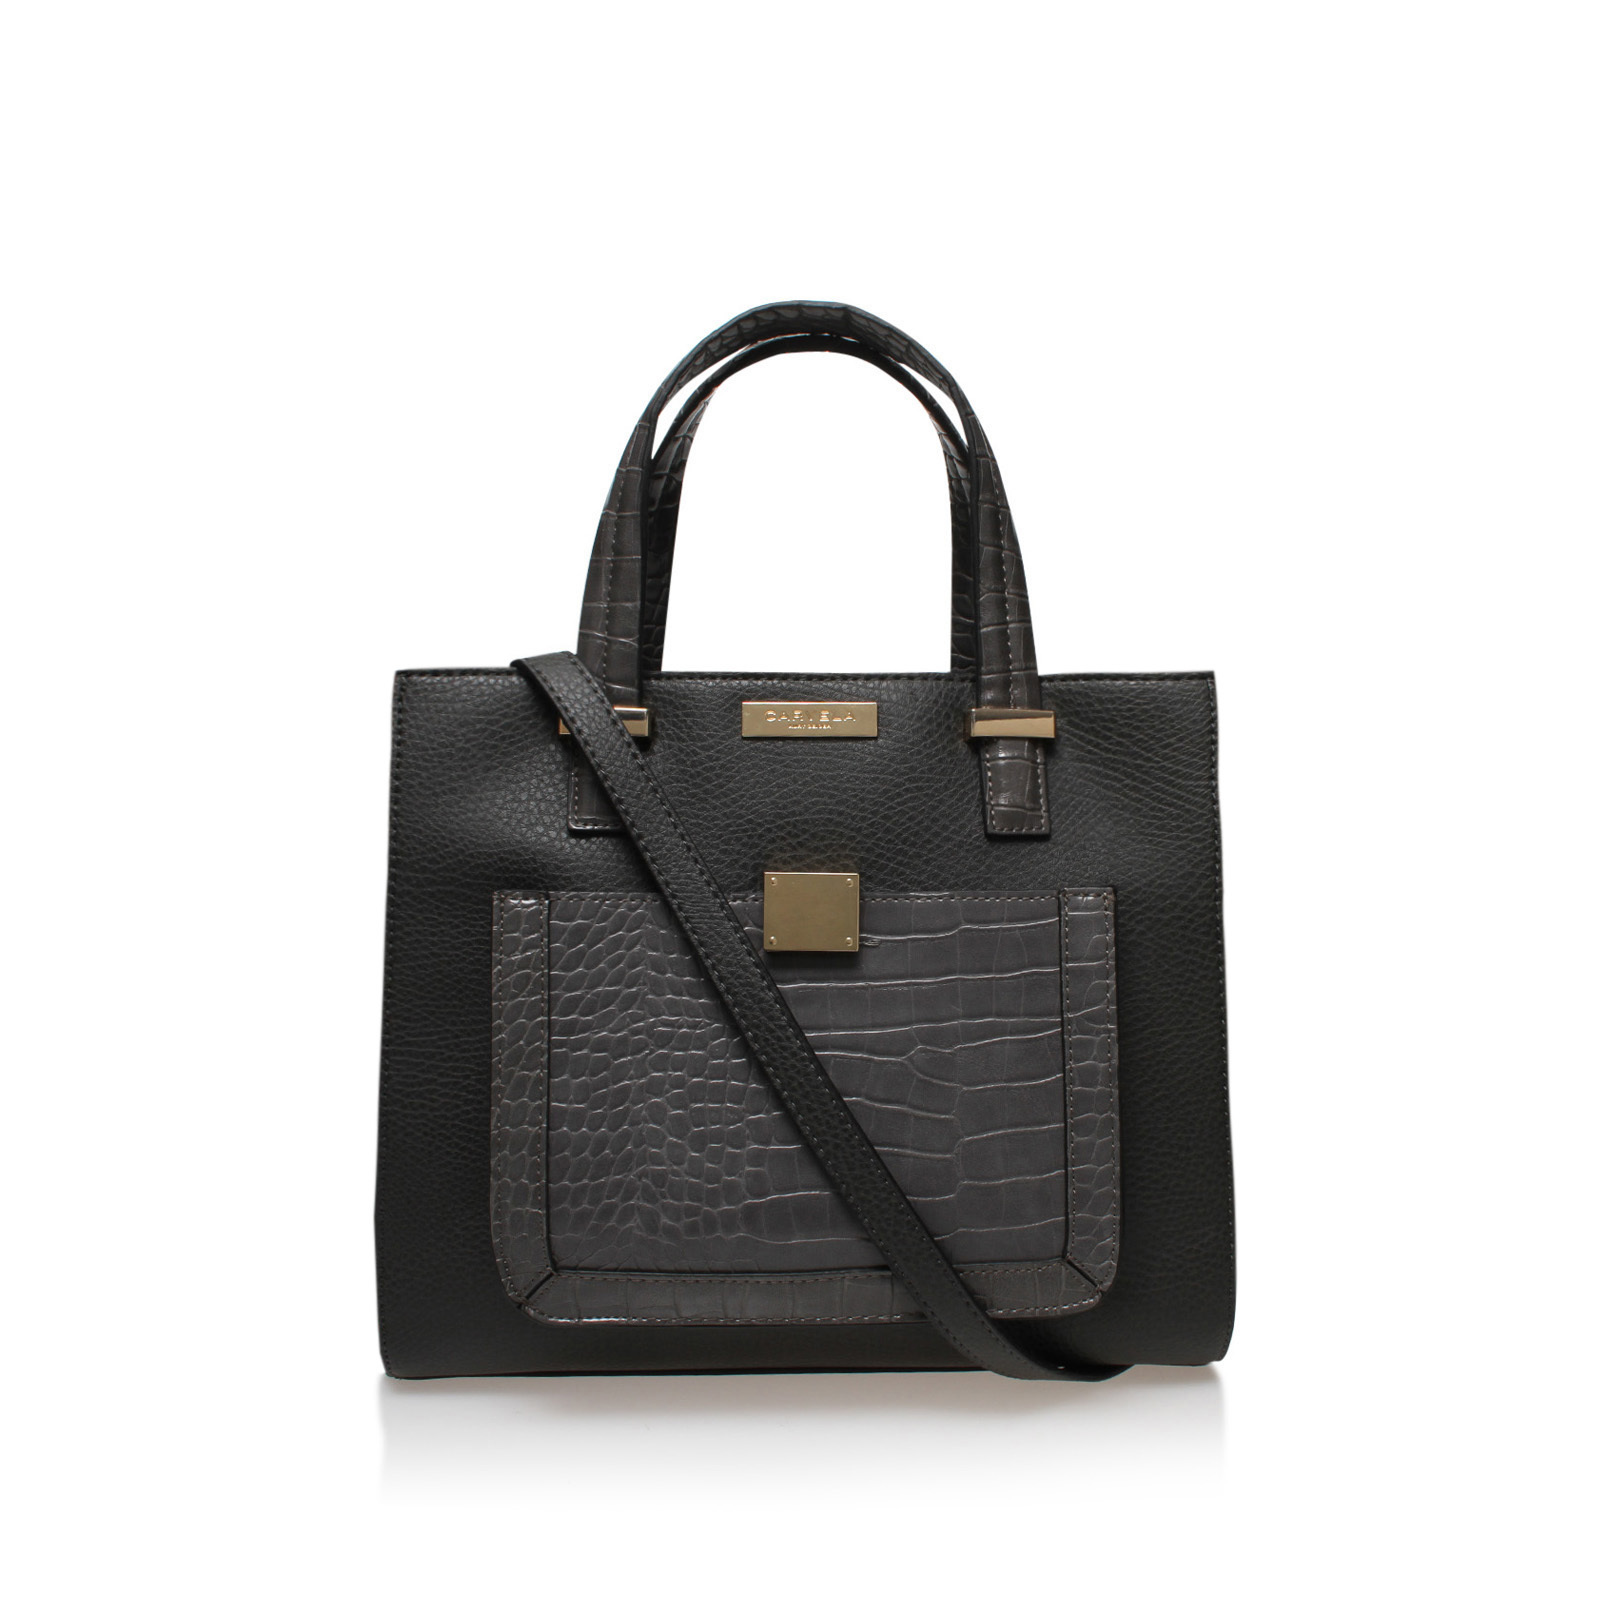 HELIA CROC LOCK PCKT BAG